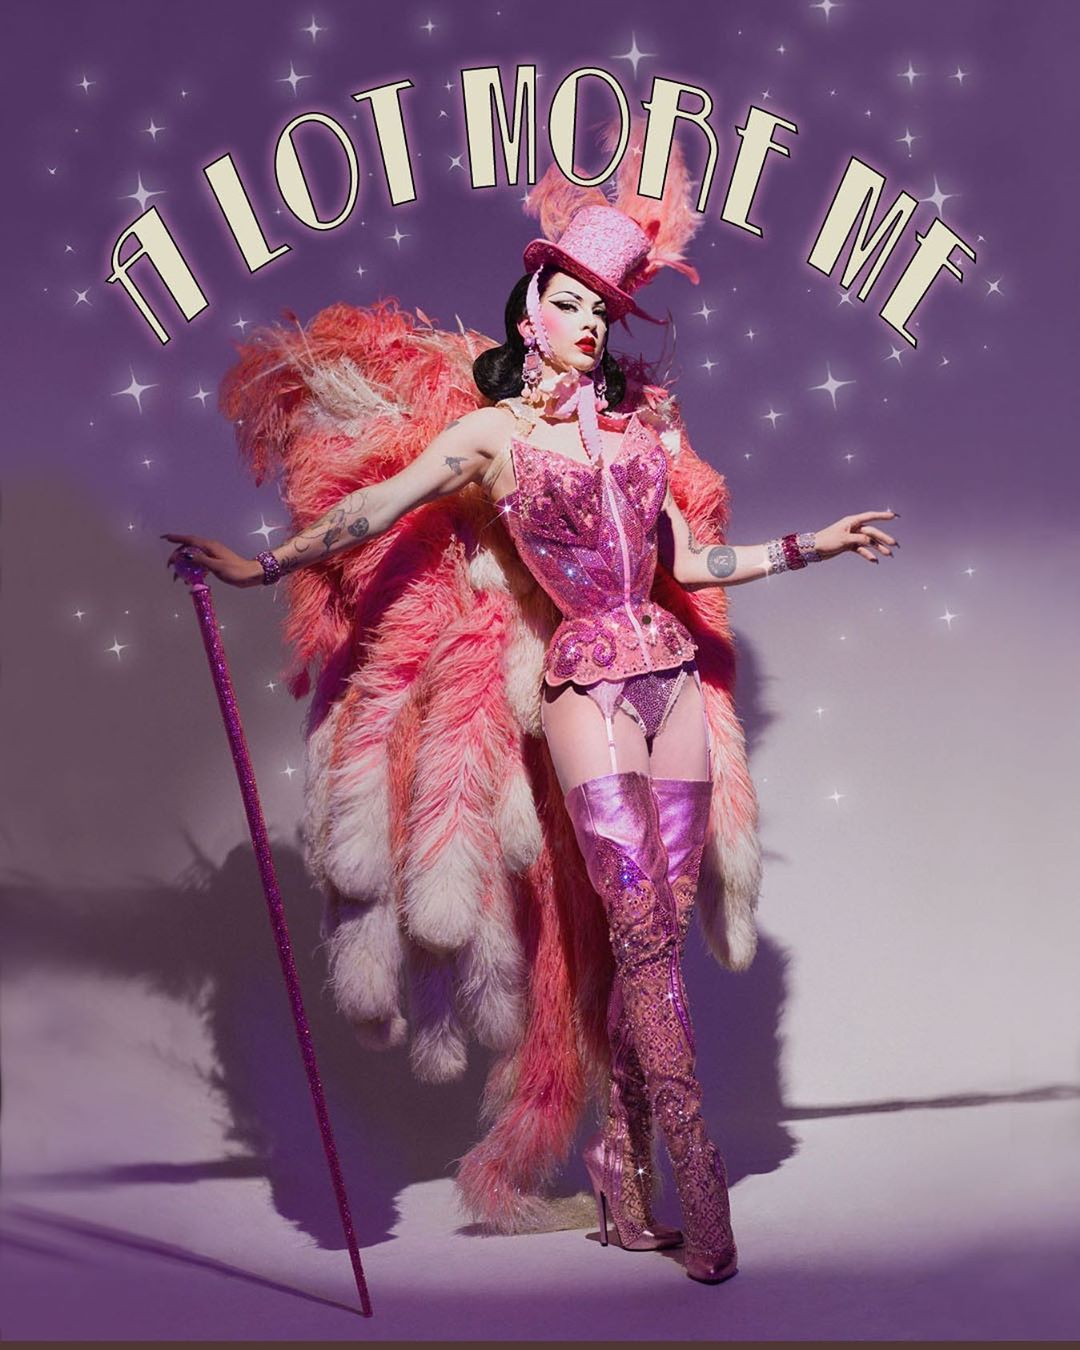 """Violet Chachki on Instagram: """"A LOT MORE ME- my first ever solo show debuts next month! Part drag show, part burlesque show, part circus show, par… in 2020 - Violet chachki - 웹"""